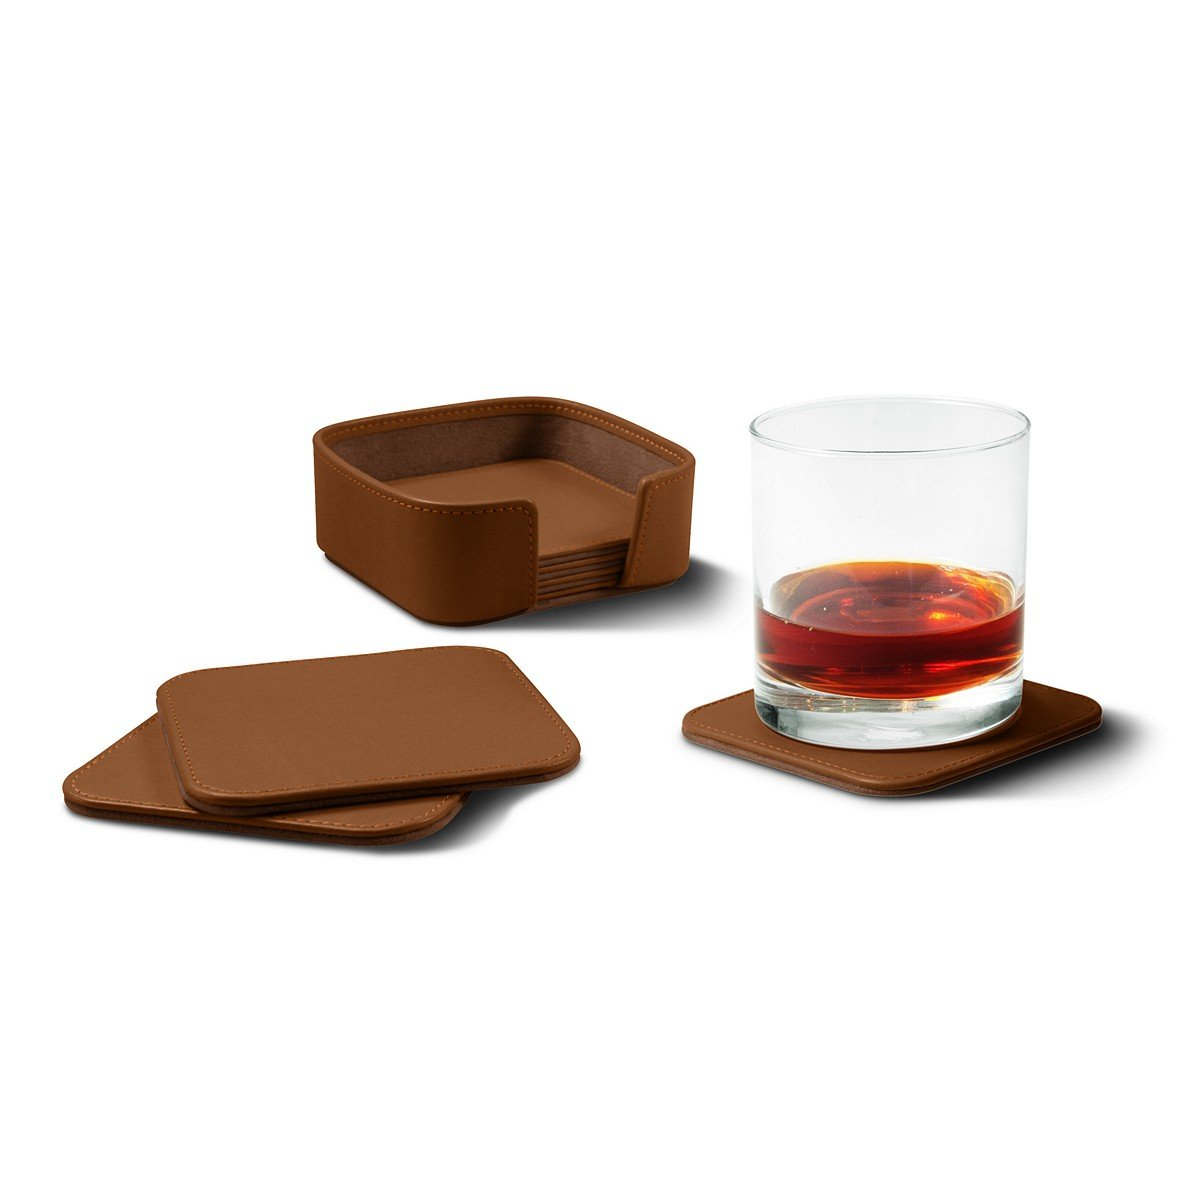 Lucrin - Set of 6 Square Genuine Leather Coasters with Coaster Holder - Tan - Smooth Leather